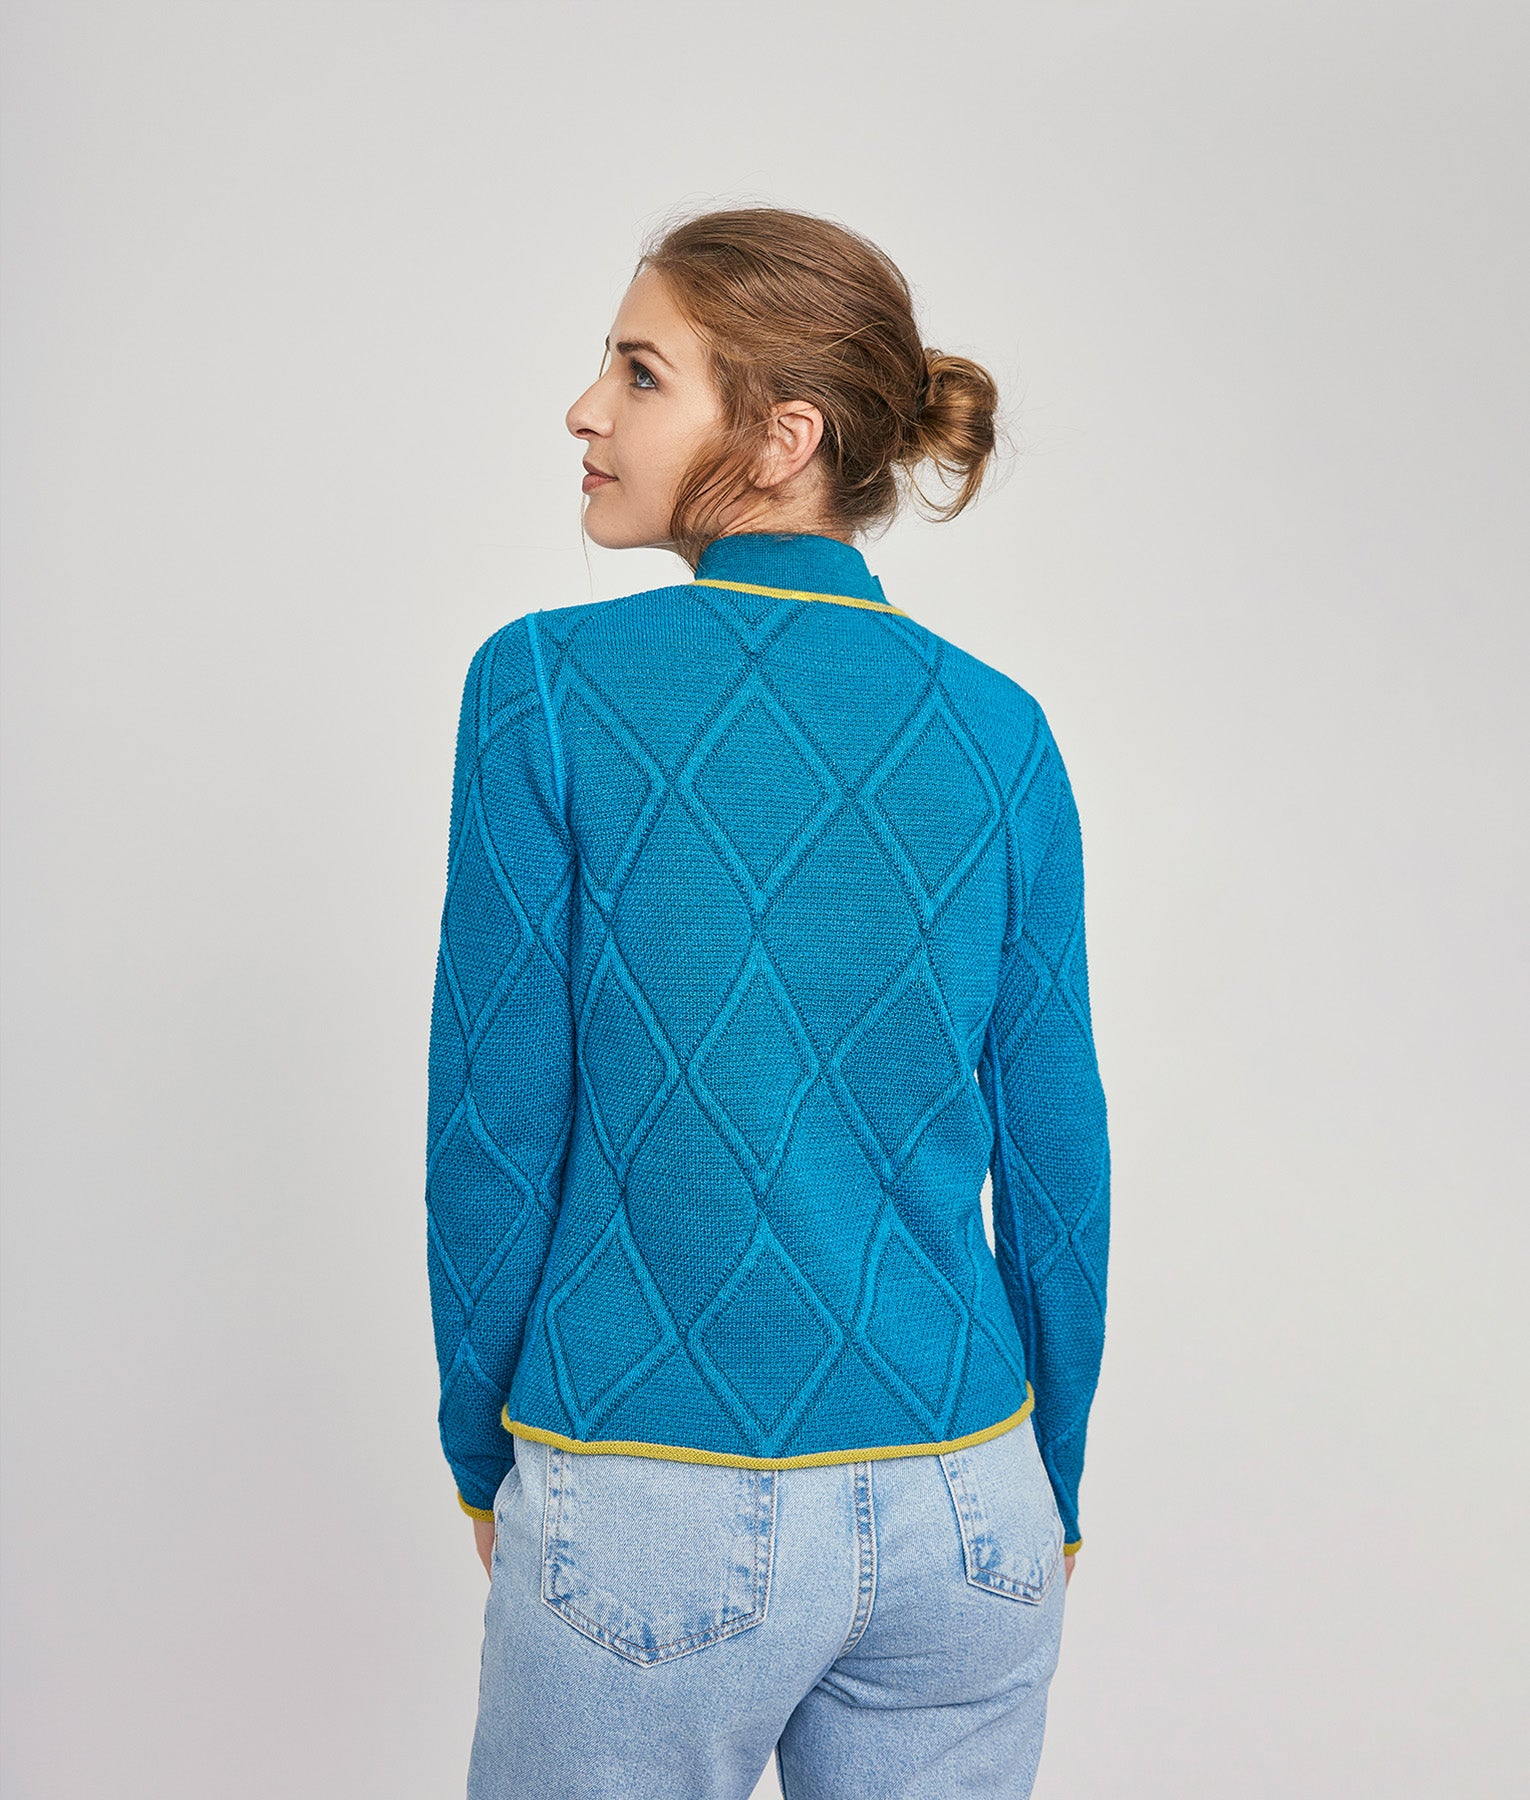 Diamond Knit Reversible Sweater